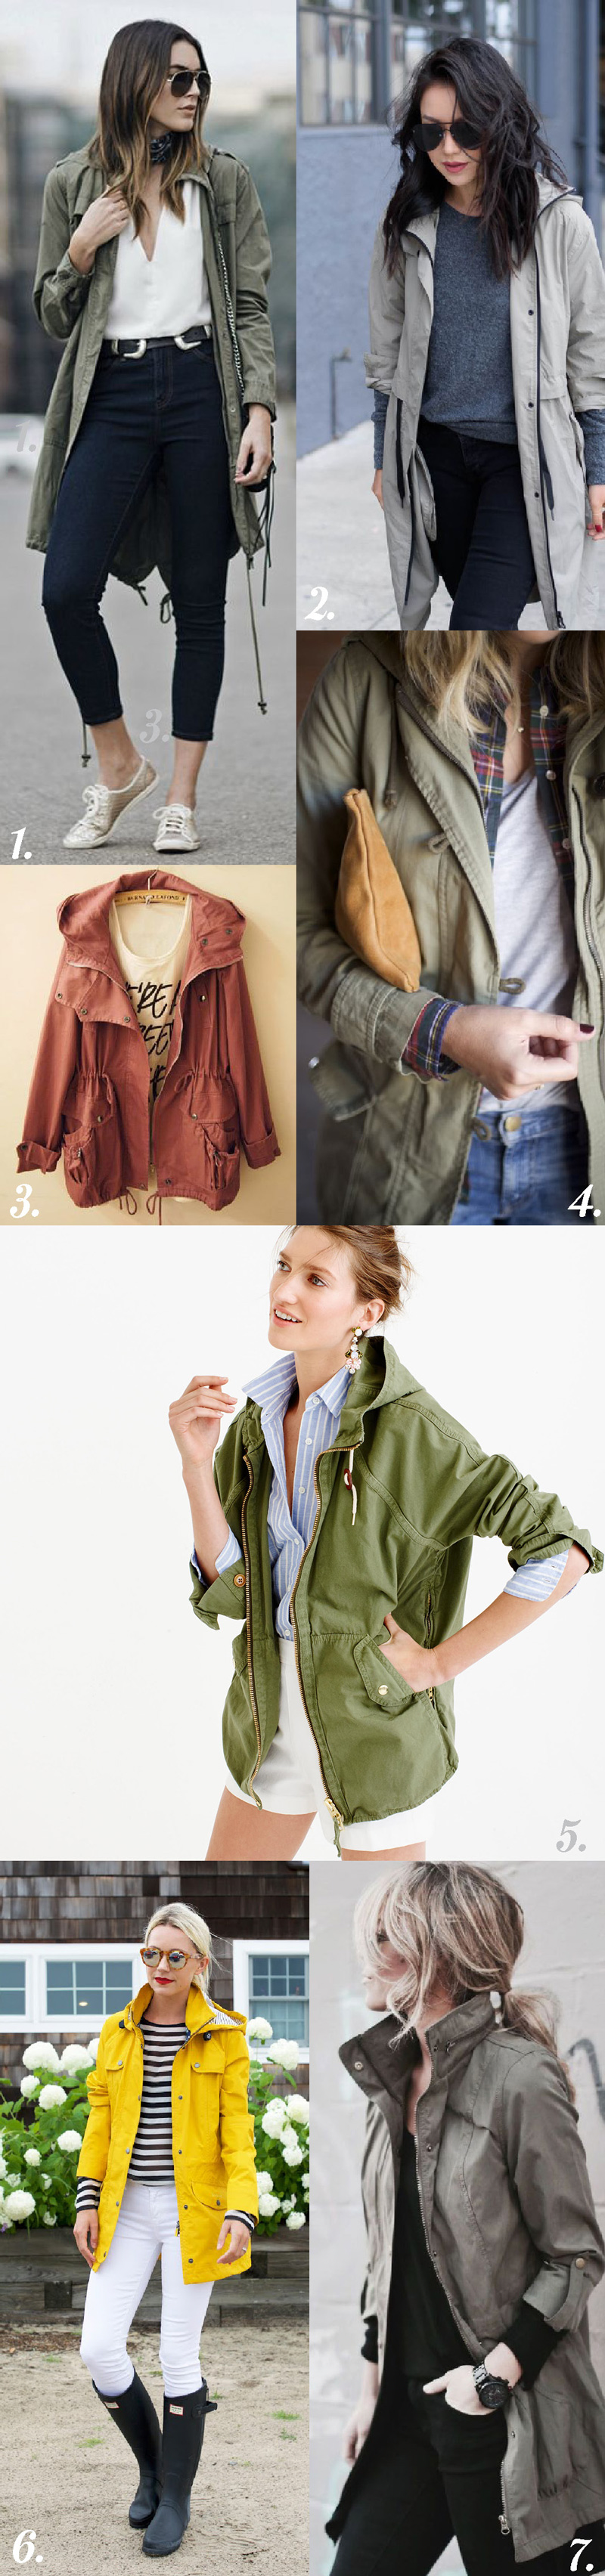 kelly-anorak-jacket-pattern_outfit-and-styling-inspiration-1